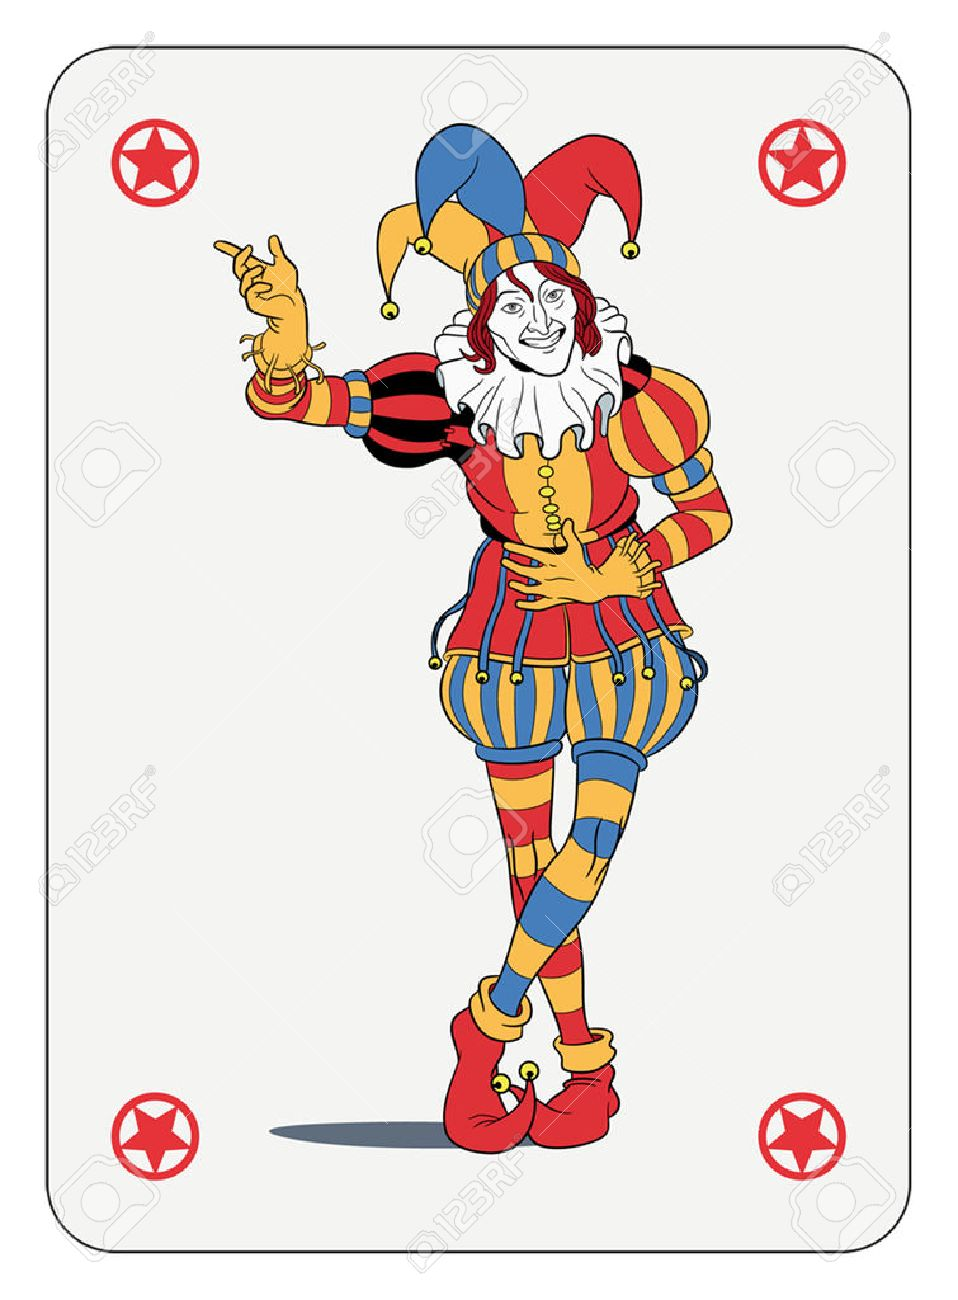 Joker in colorful costume playing card.